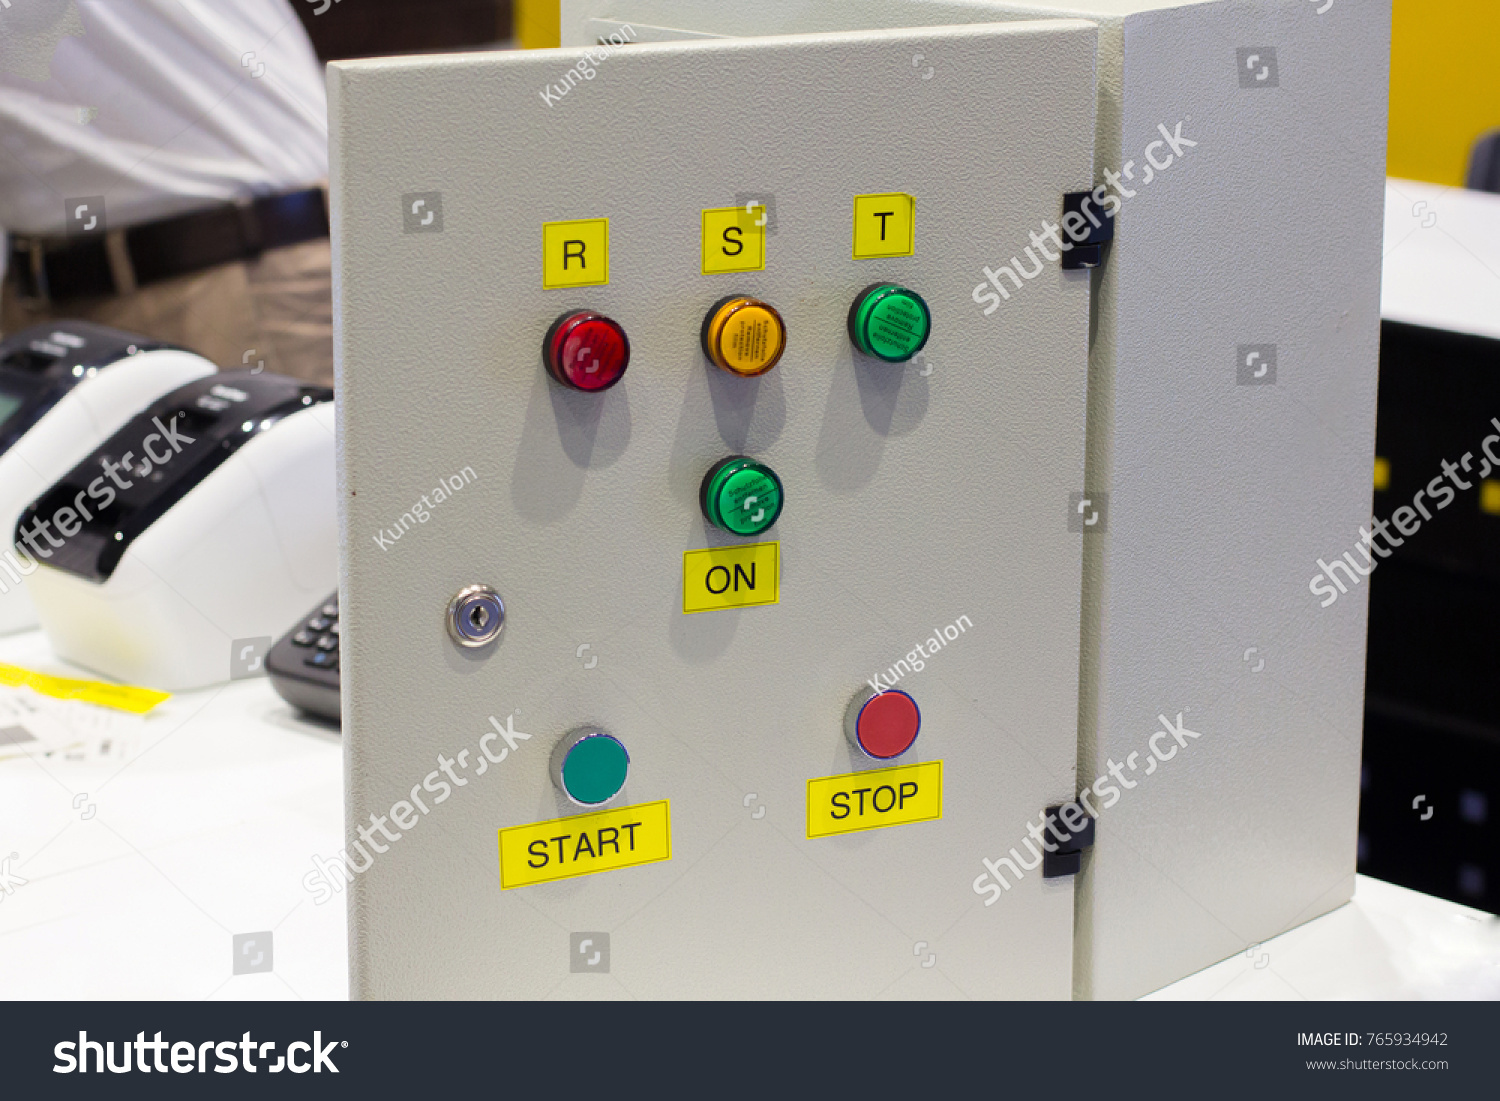 Sticker printing indicate button status name stock photo edit now